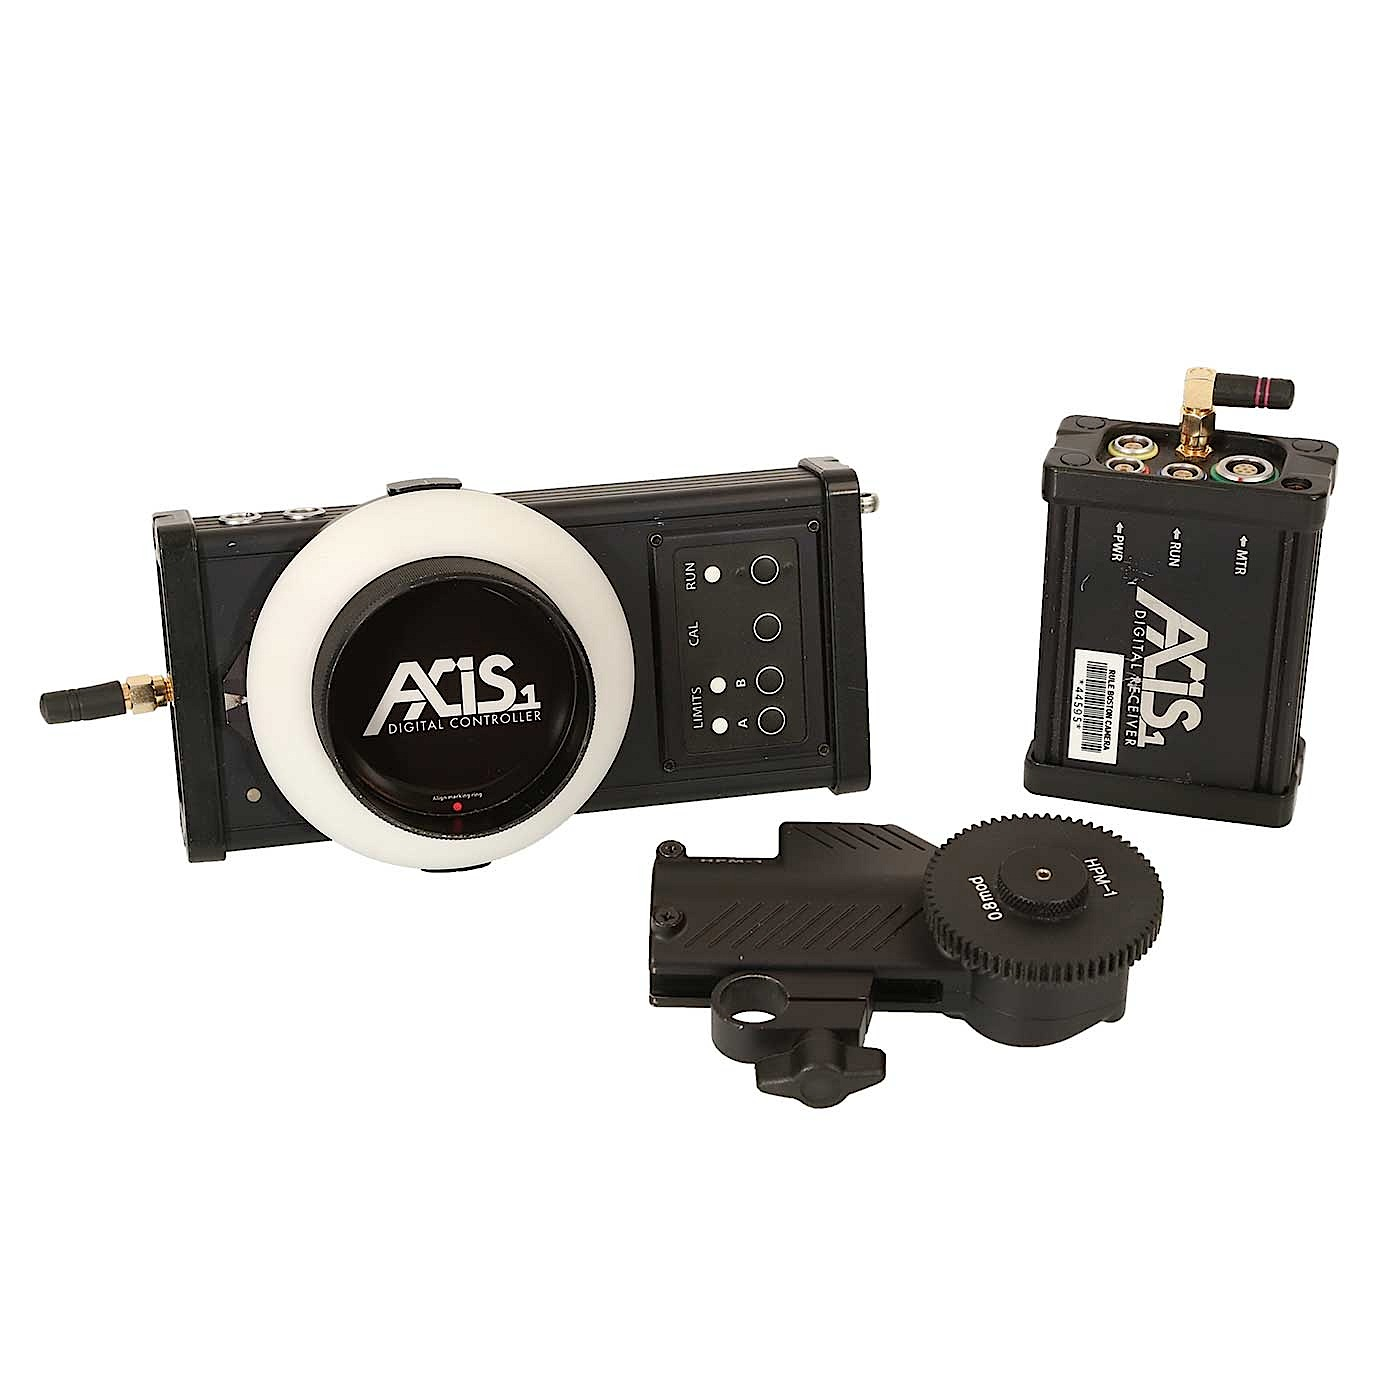 Hocus Pocus Axis1 Wireless Follow Focus System